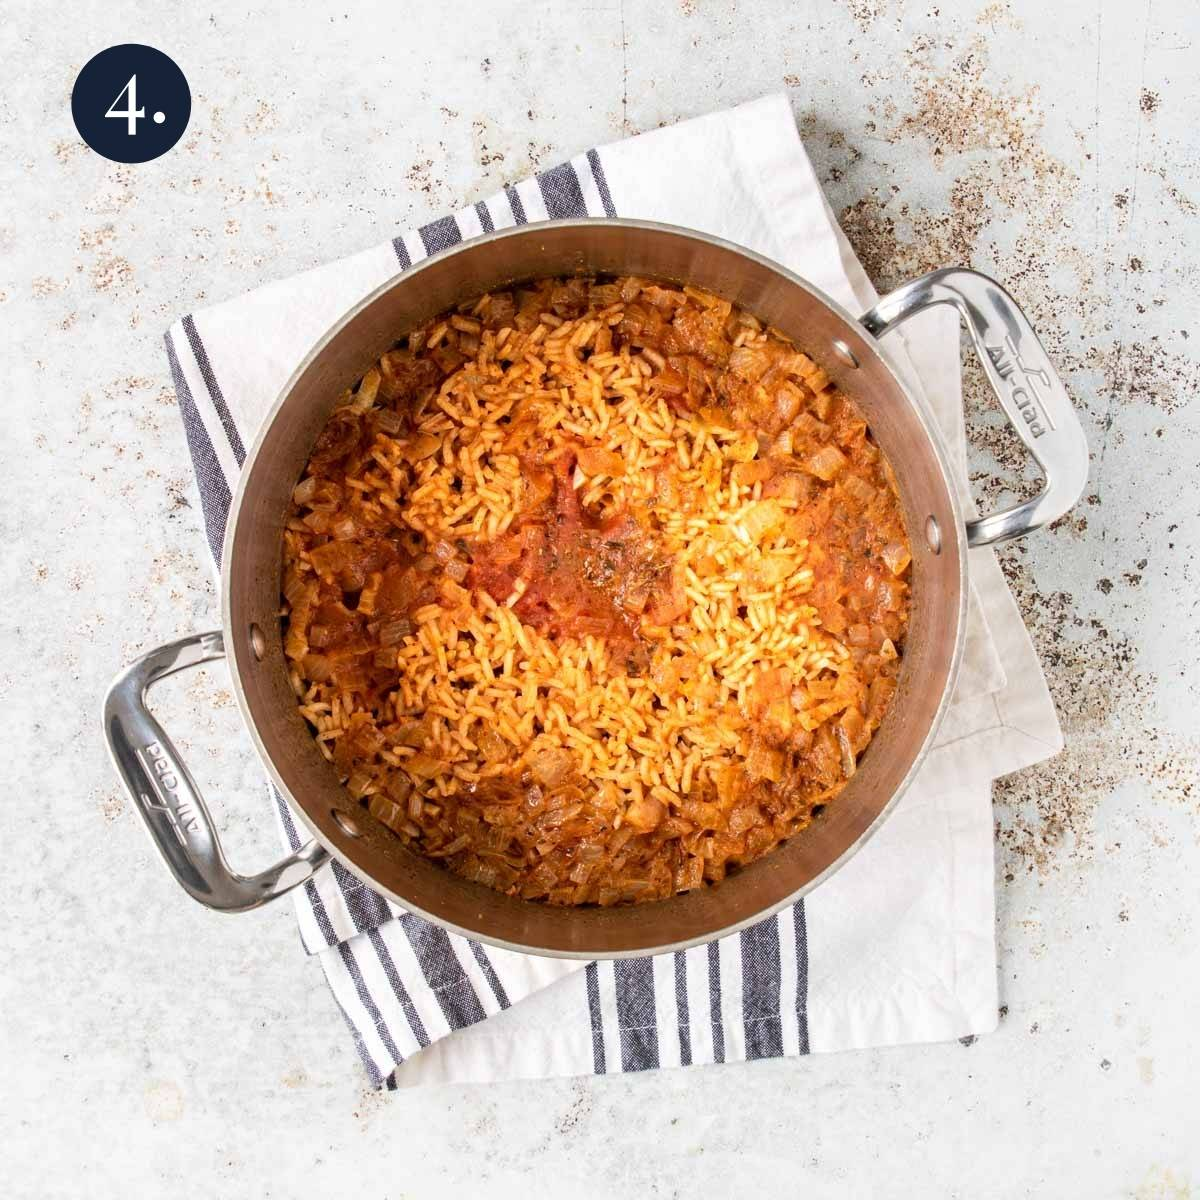 mexican rice cooked in a pot with onions and tomato sauce on top